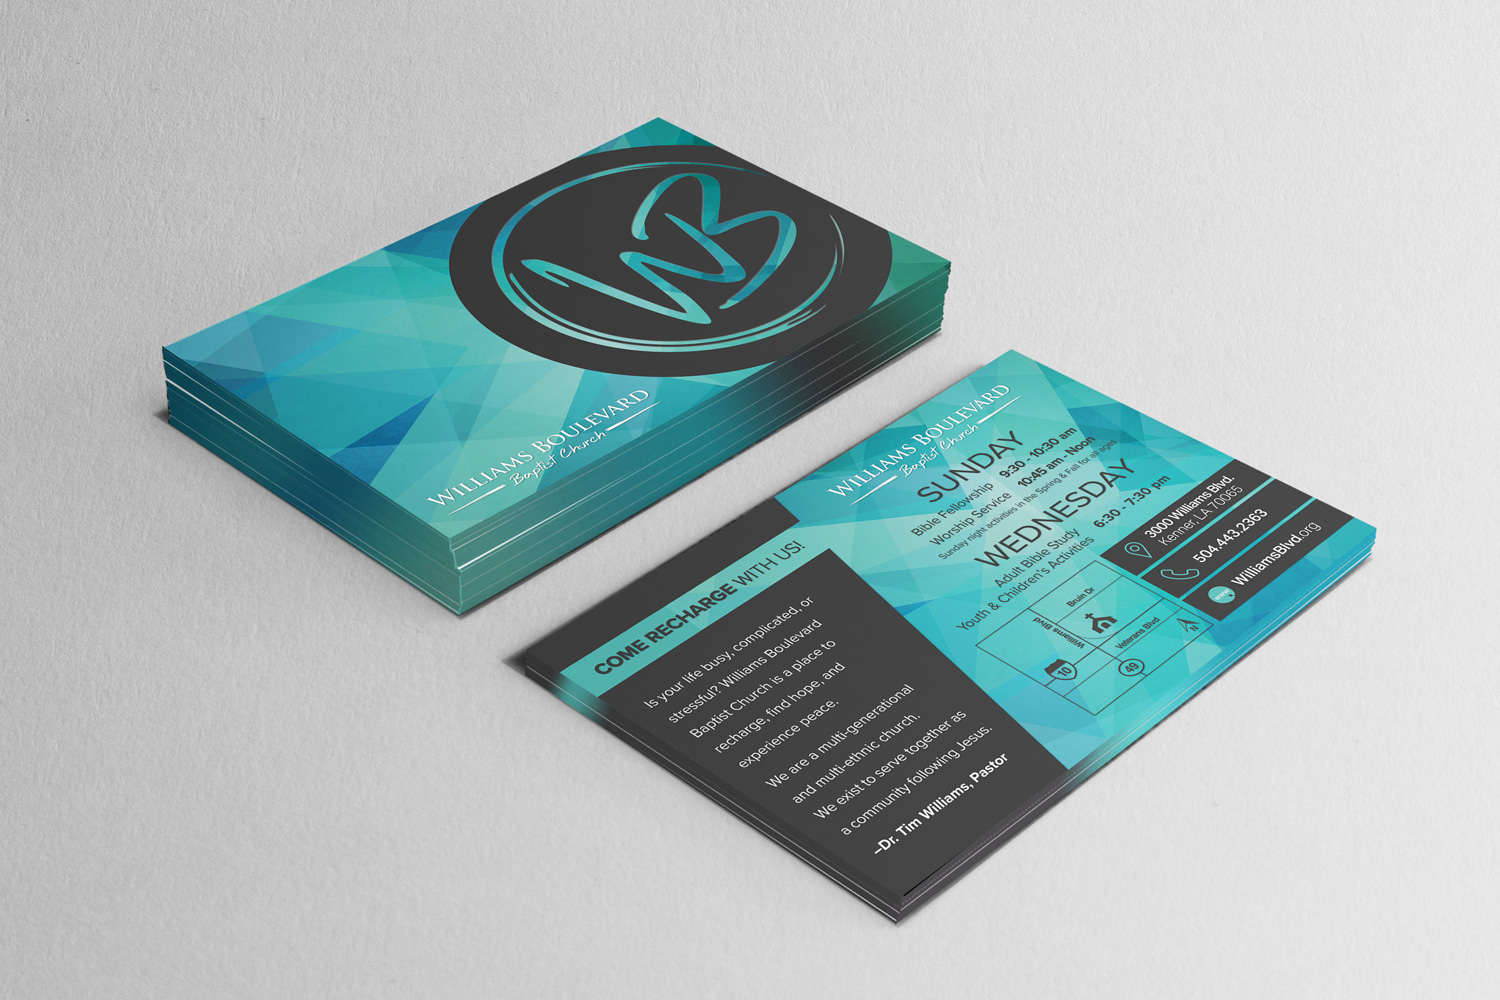 Church marketing postcard design and printing for outreach ideas